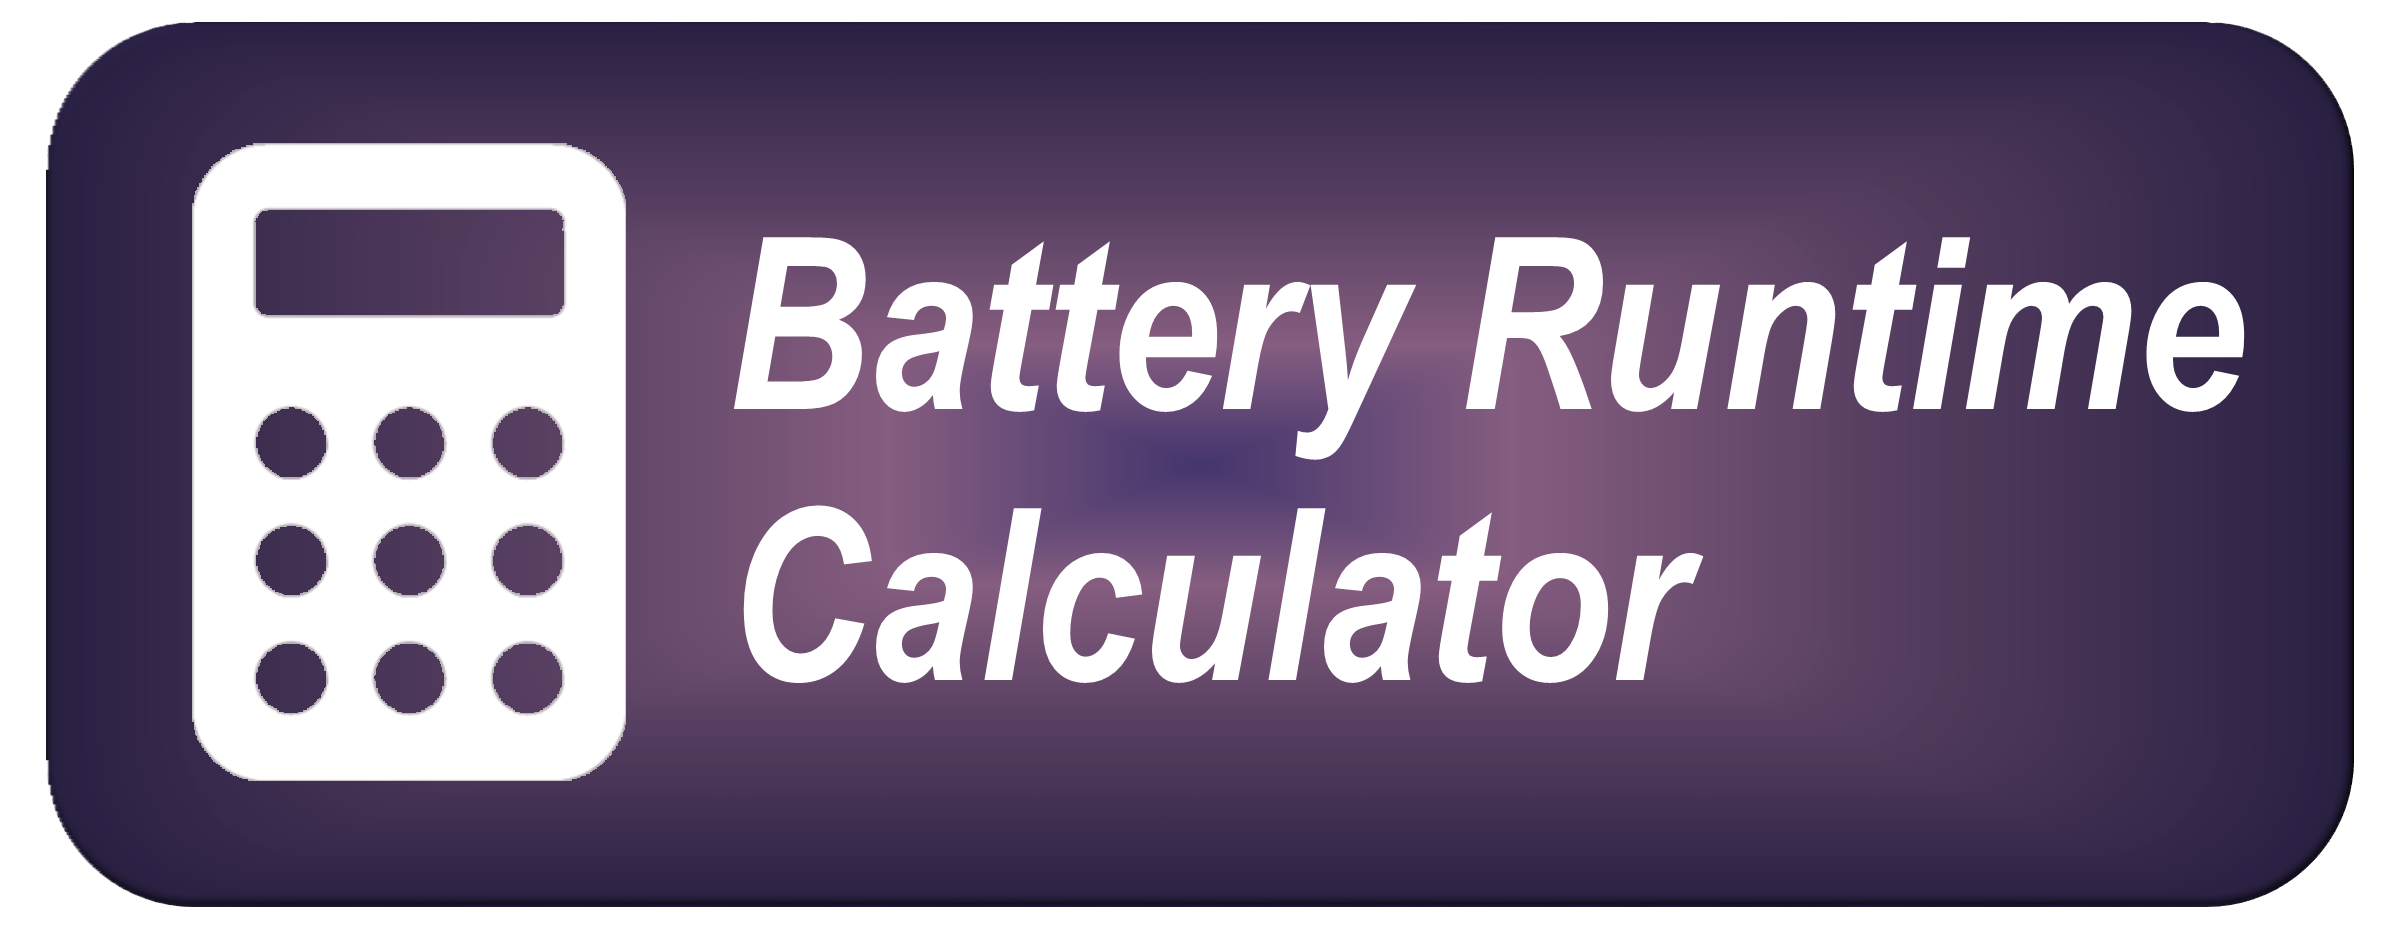 Battery Runtime Calculator.png